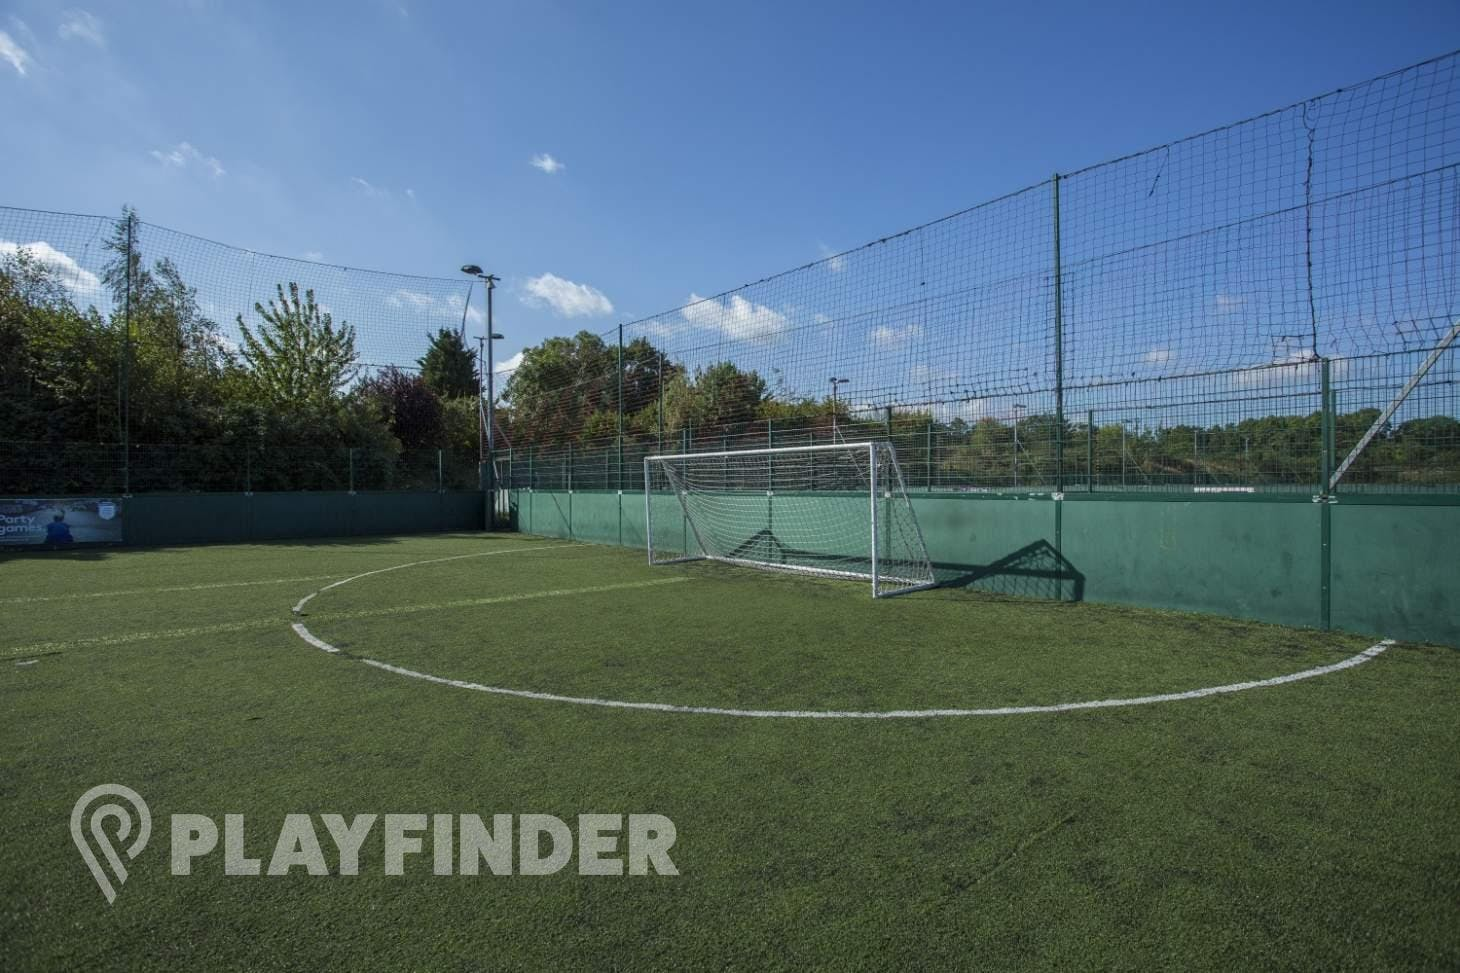 Powerleague Nottingham 5 a side | 3G Astroturf football pitch